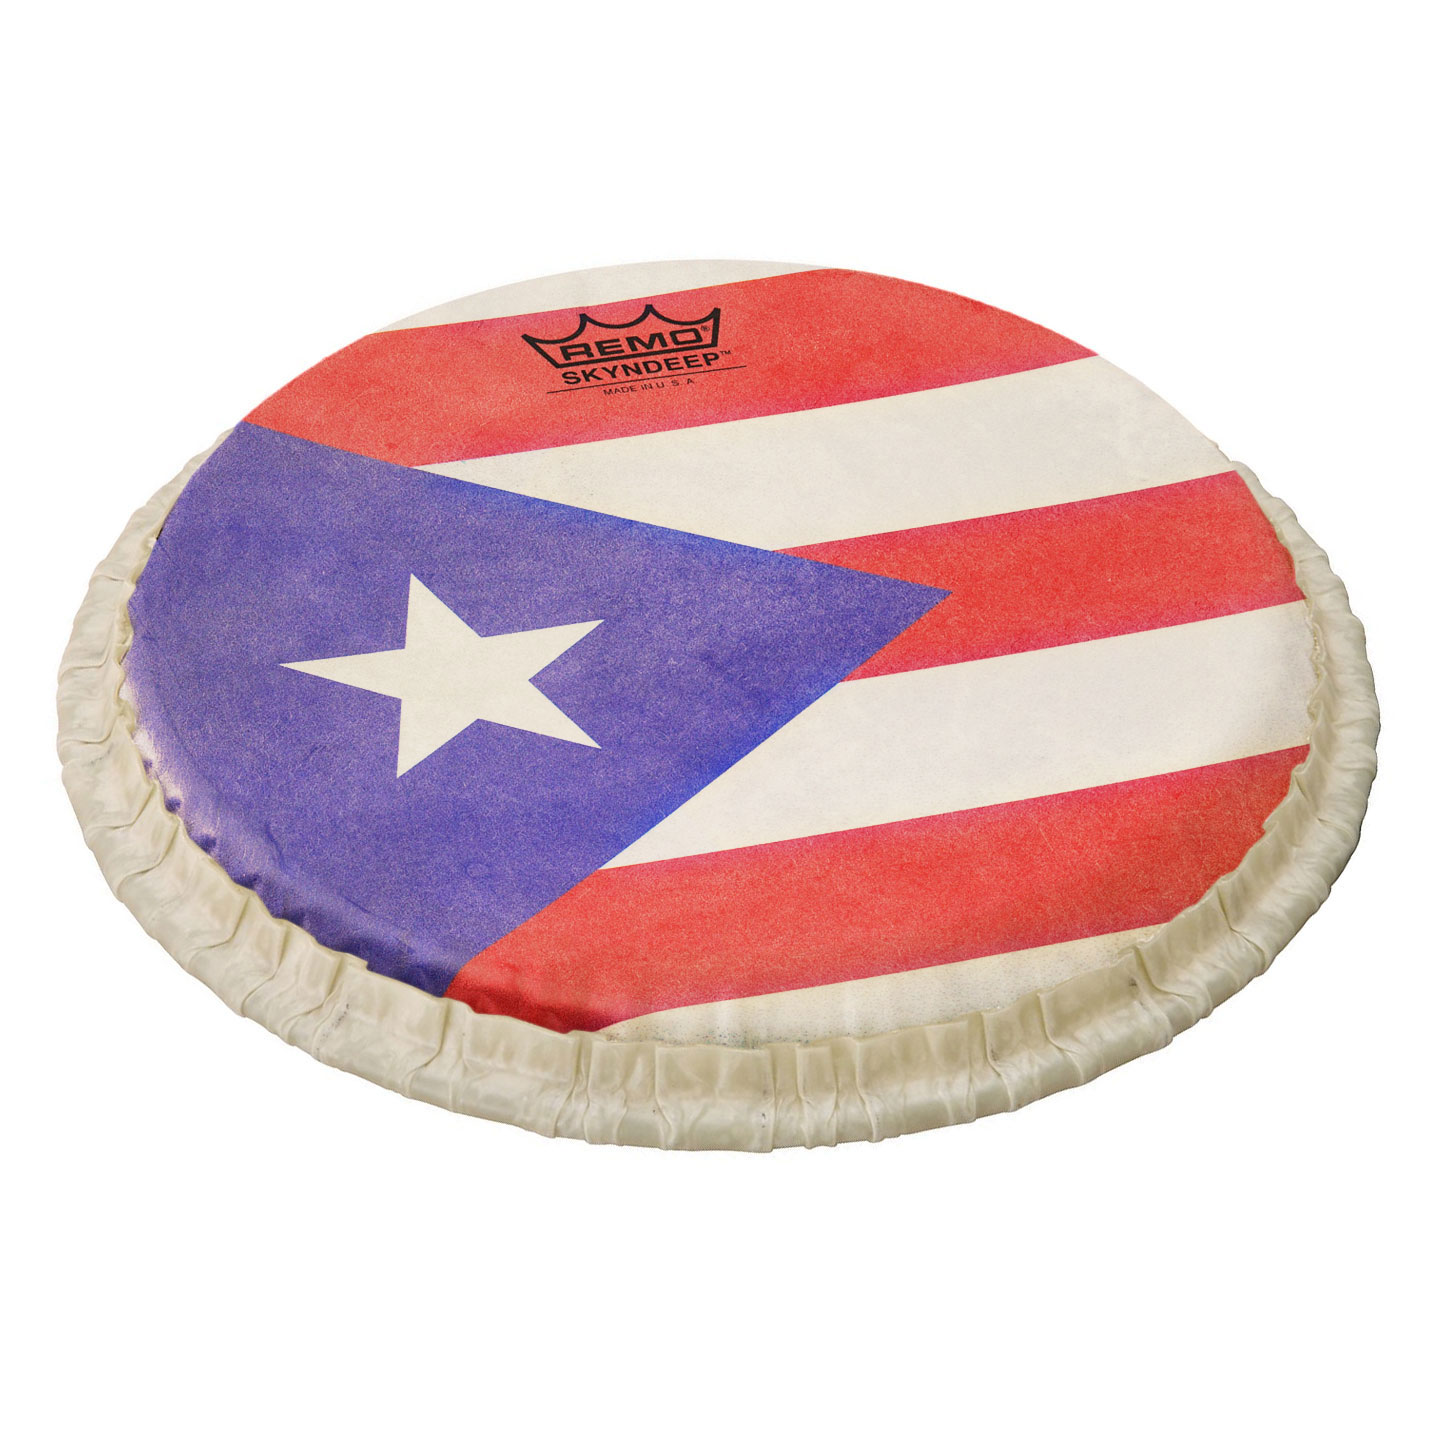 "Remo 8.5"" Tucked Skyndeep Bongo Drum Head with Puerto Rican Flag Graphic"